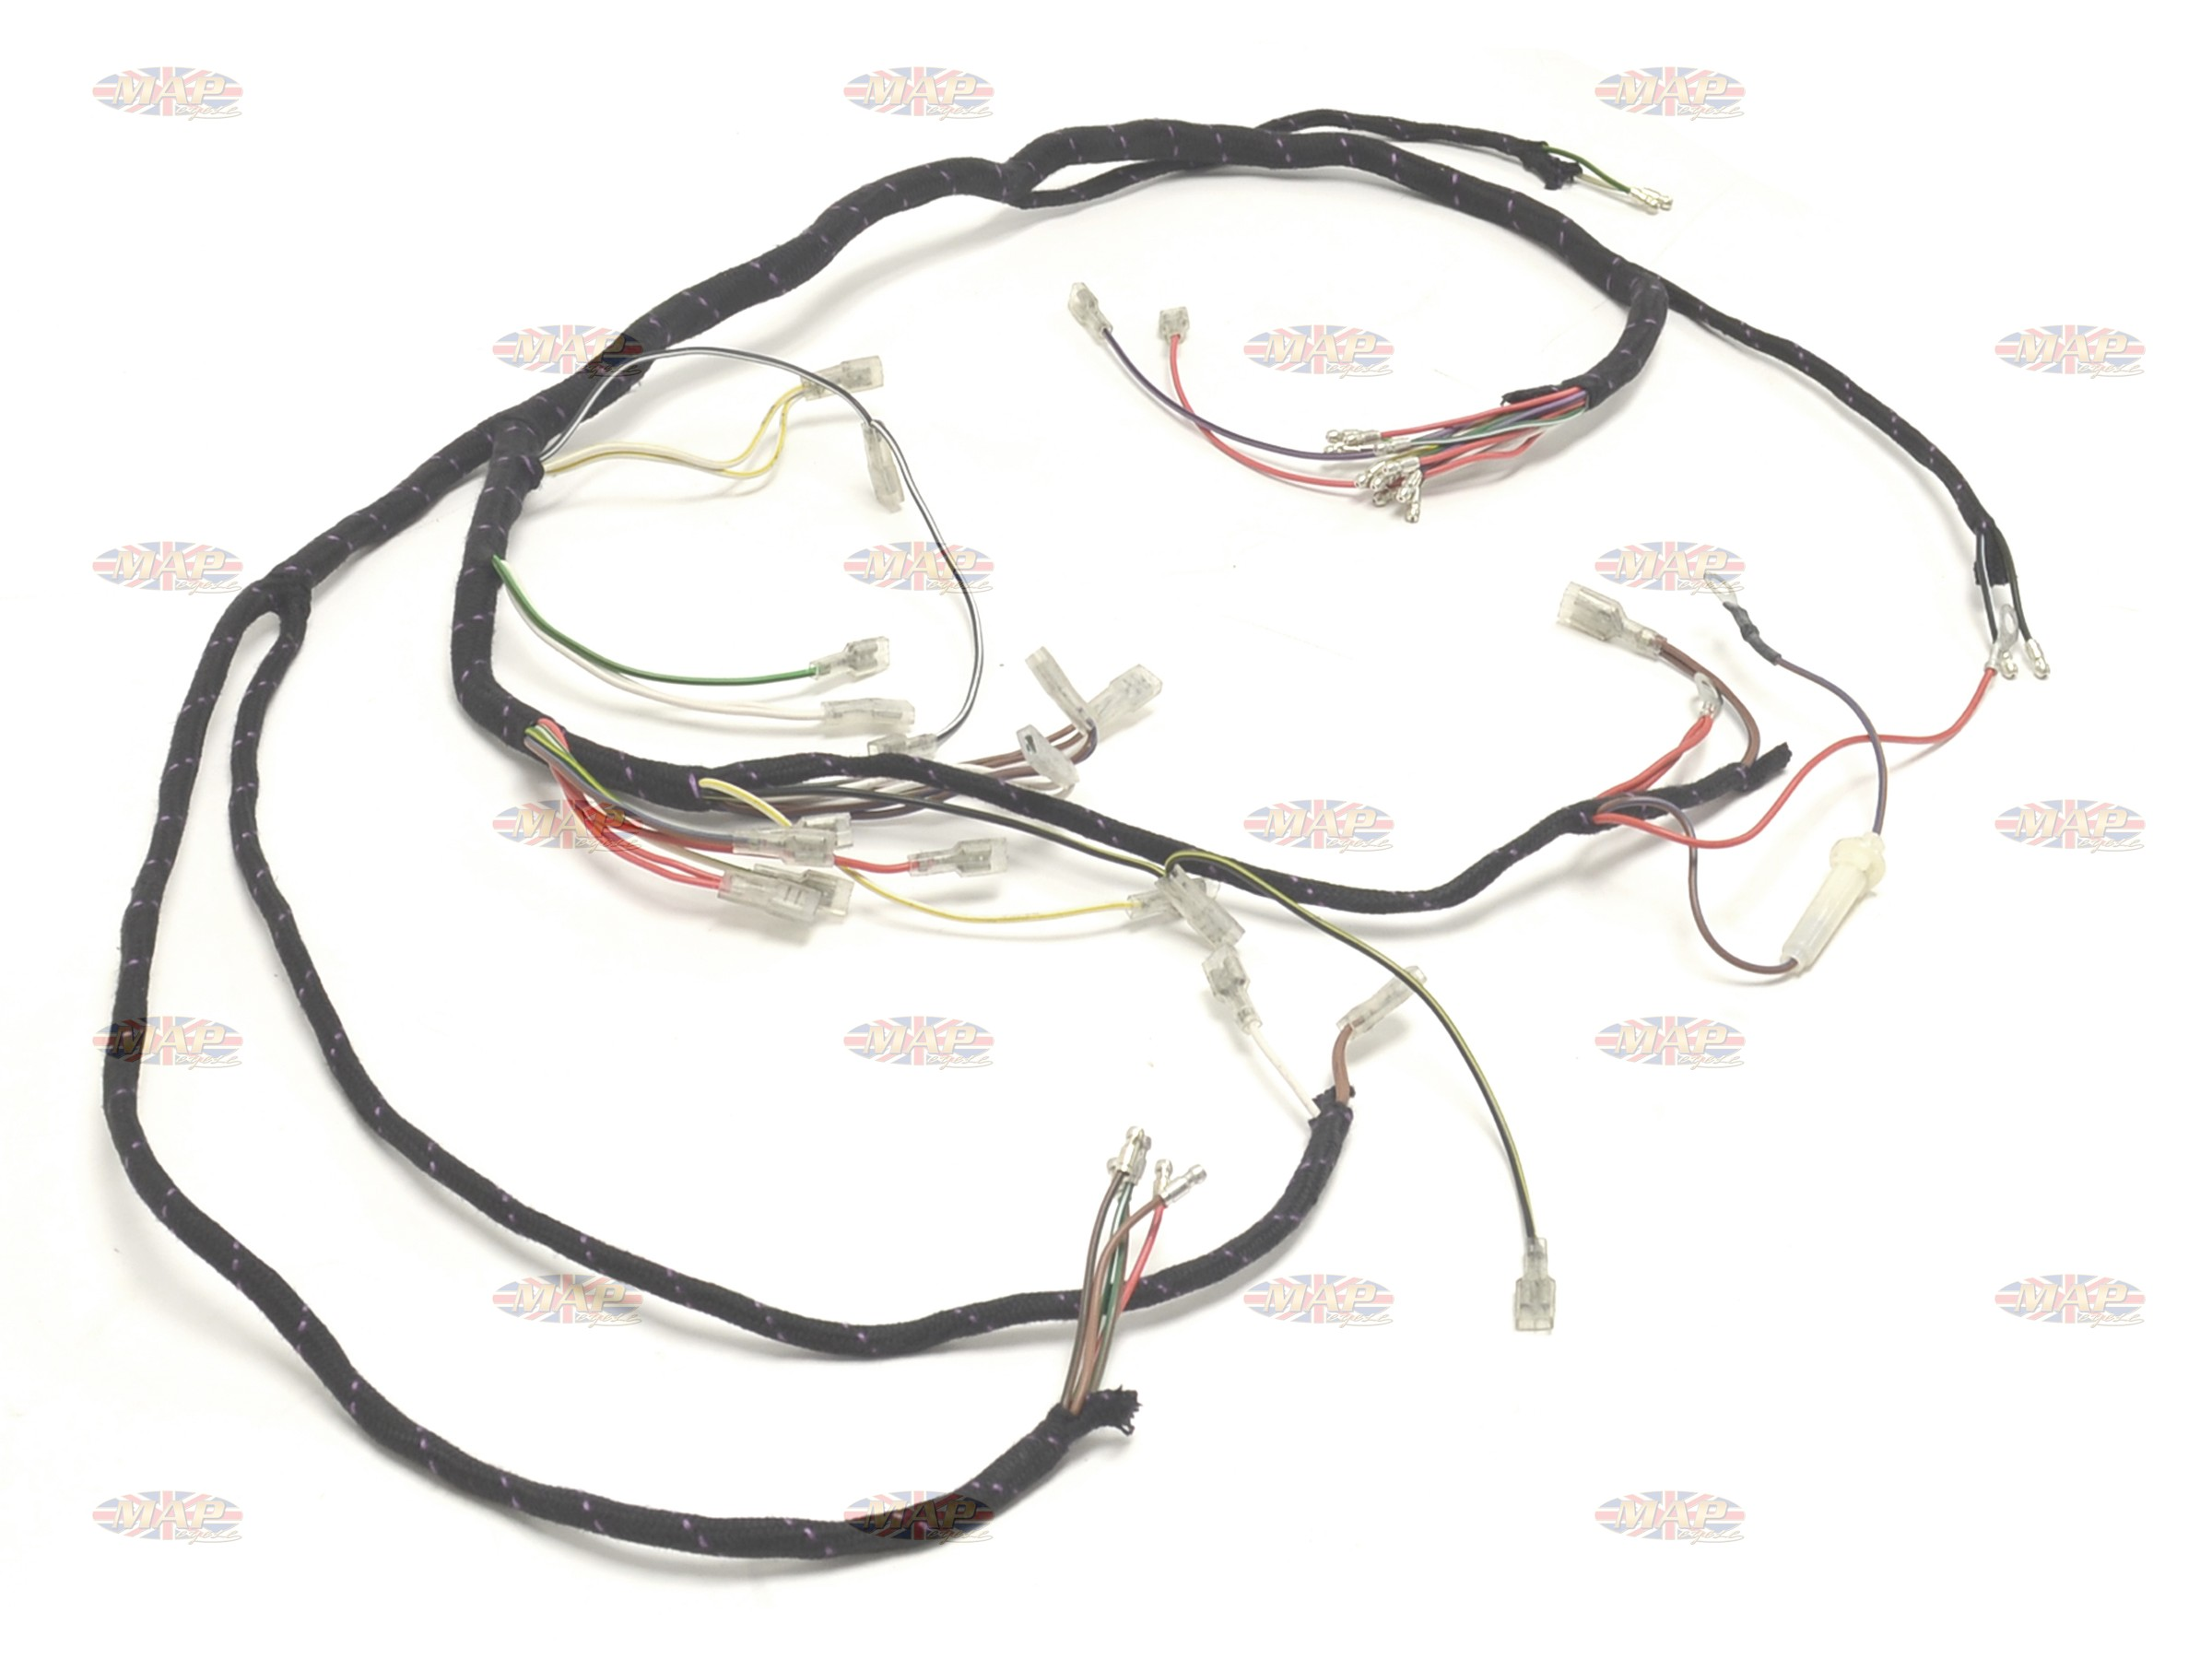 triumph 1971 73 t120 bonneville tr6 tiger uk made main wiring harness 9bc triumph 1971 73 t120 bonneville tr6 tiger uk made main wiring harness triumph t140 wiring harness at couponss.co